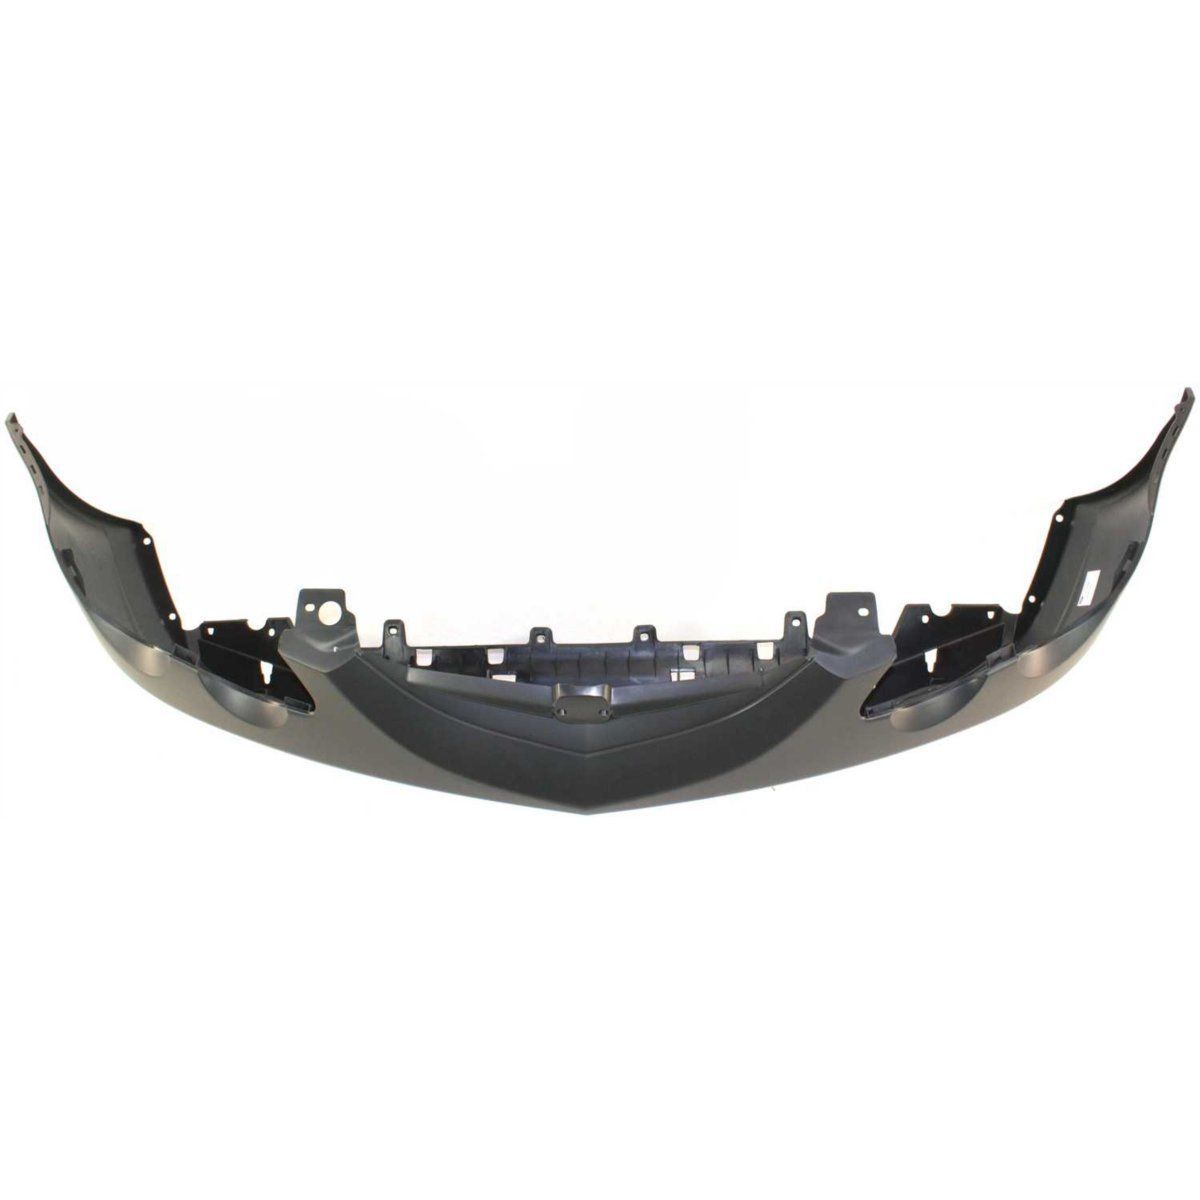 Front Bumper Cover For 2002-2004 Acura RSX Primed Plastic